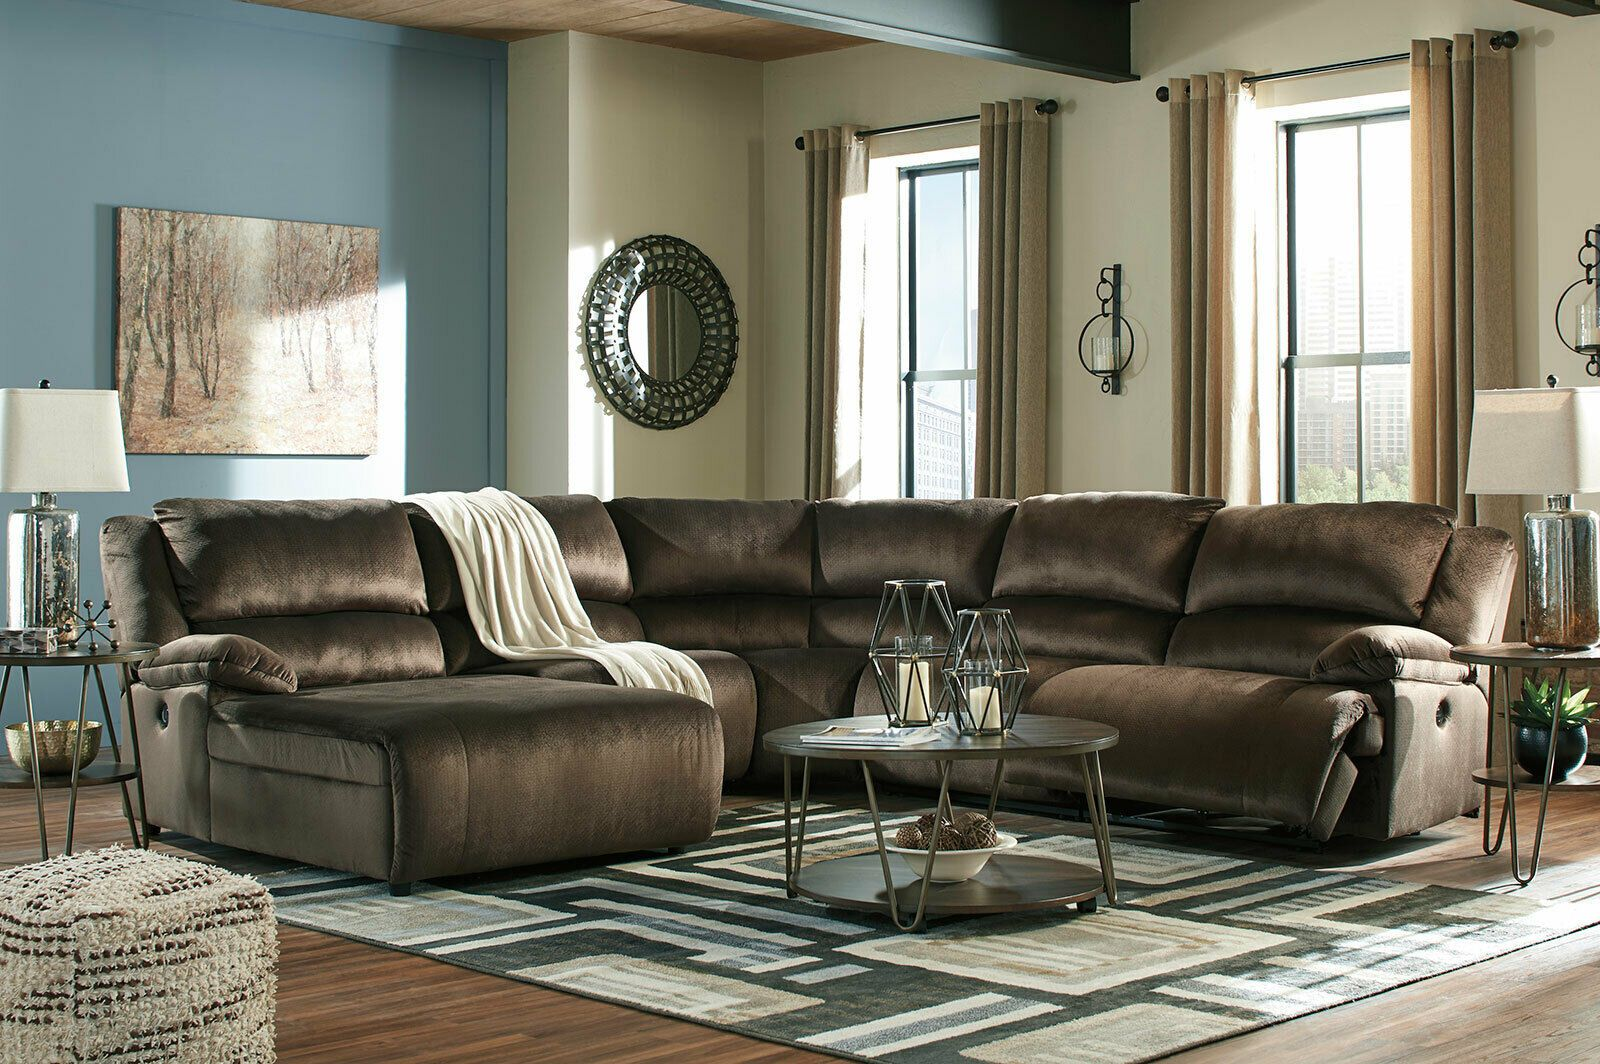 Excellent Modern 5 Piece Sectional Living Room Brown Fabric Reclining Cjindustries Chair Design For Home Cjindustriesco